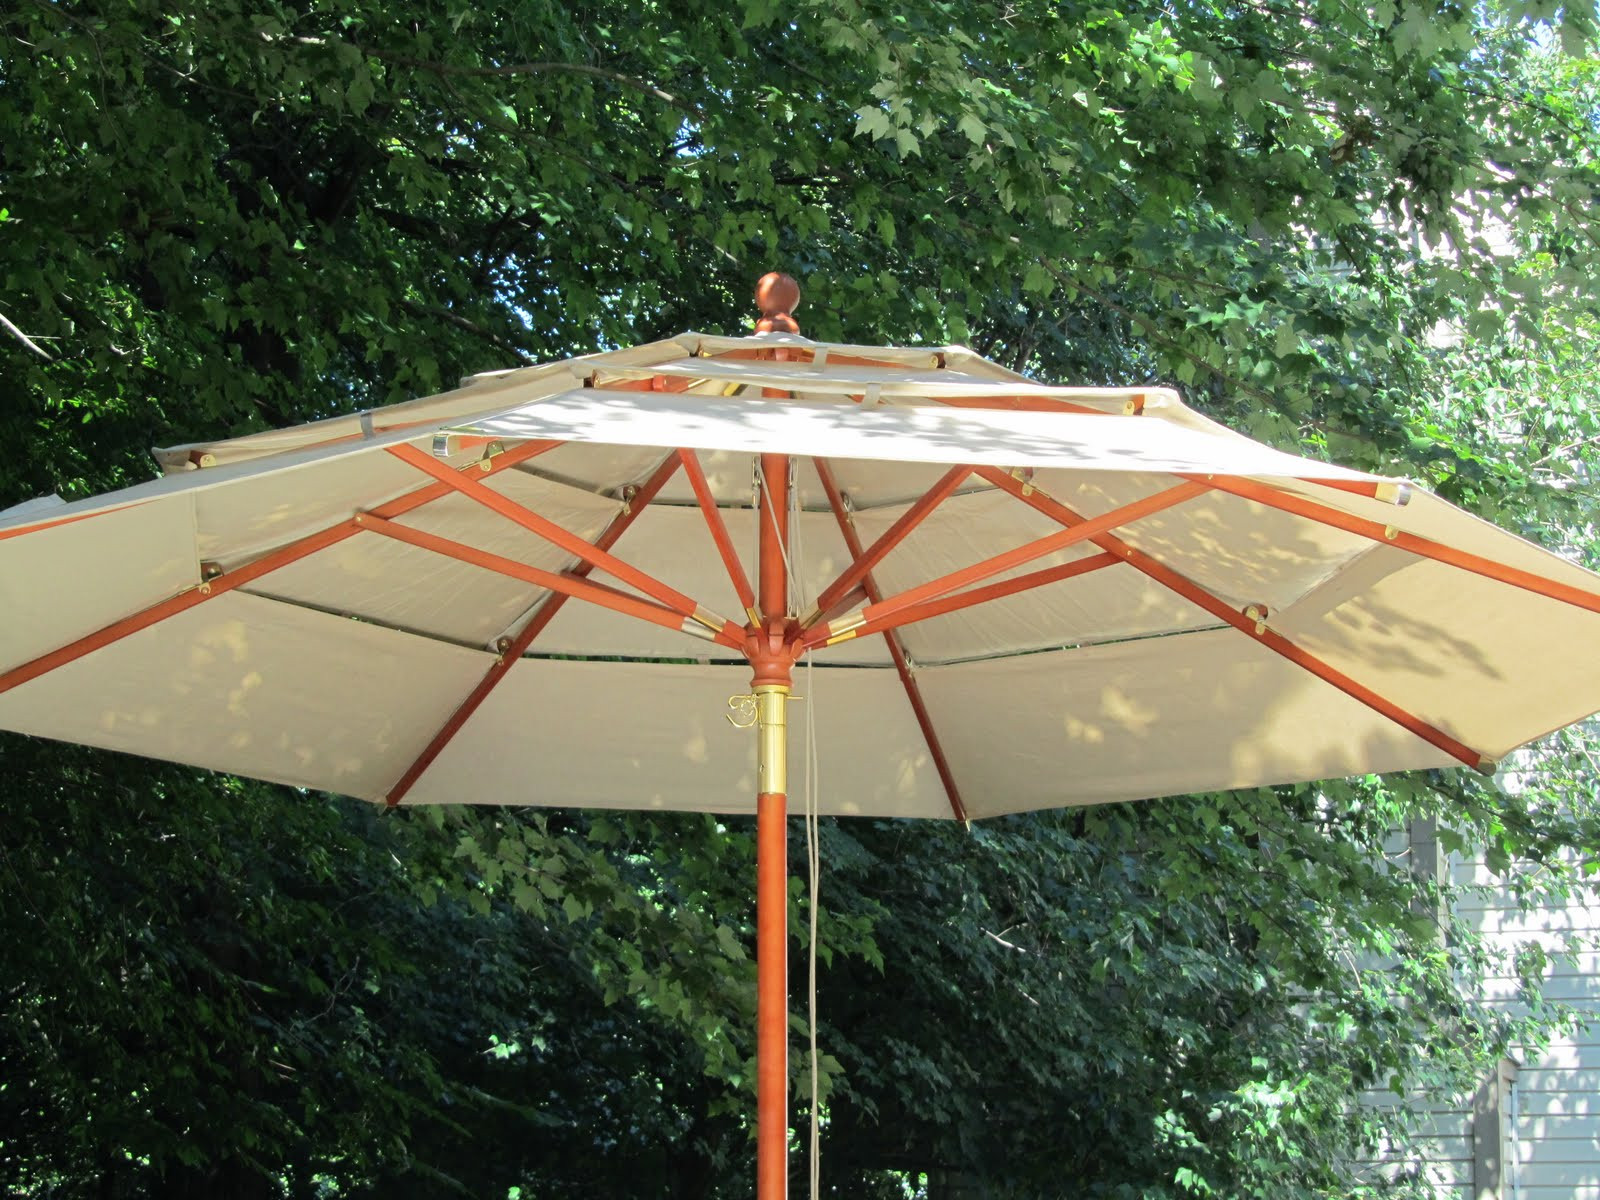 Best ideas about Costco Patio Umbrella . Save or Pin Acanthus and Acorn Outdoor Room Bud Version Now.